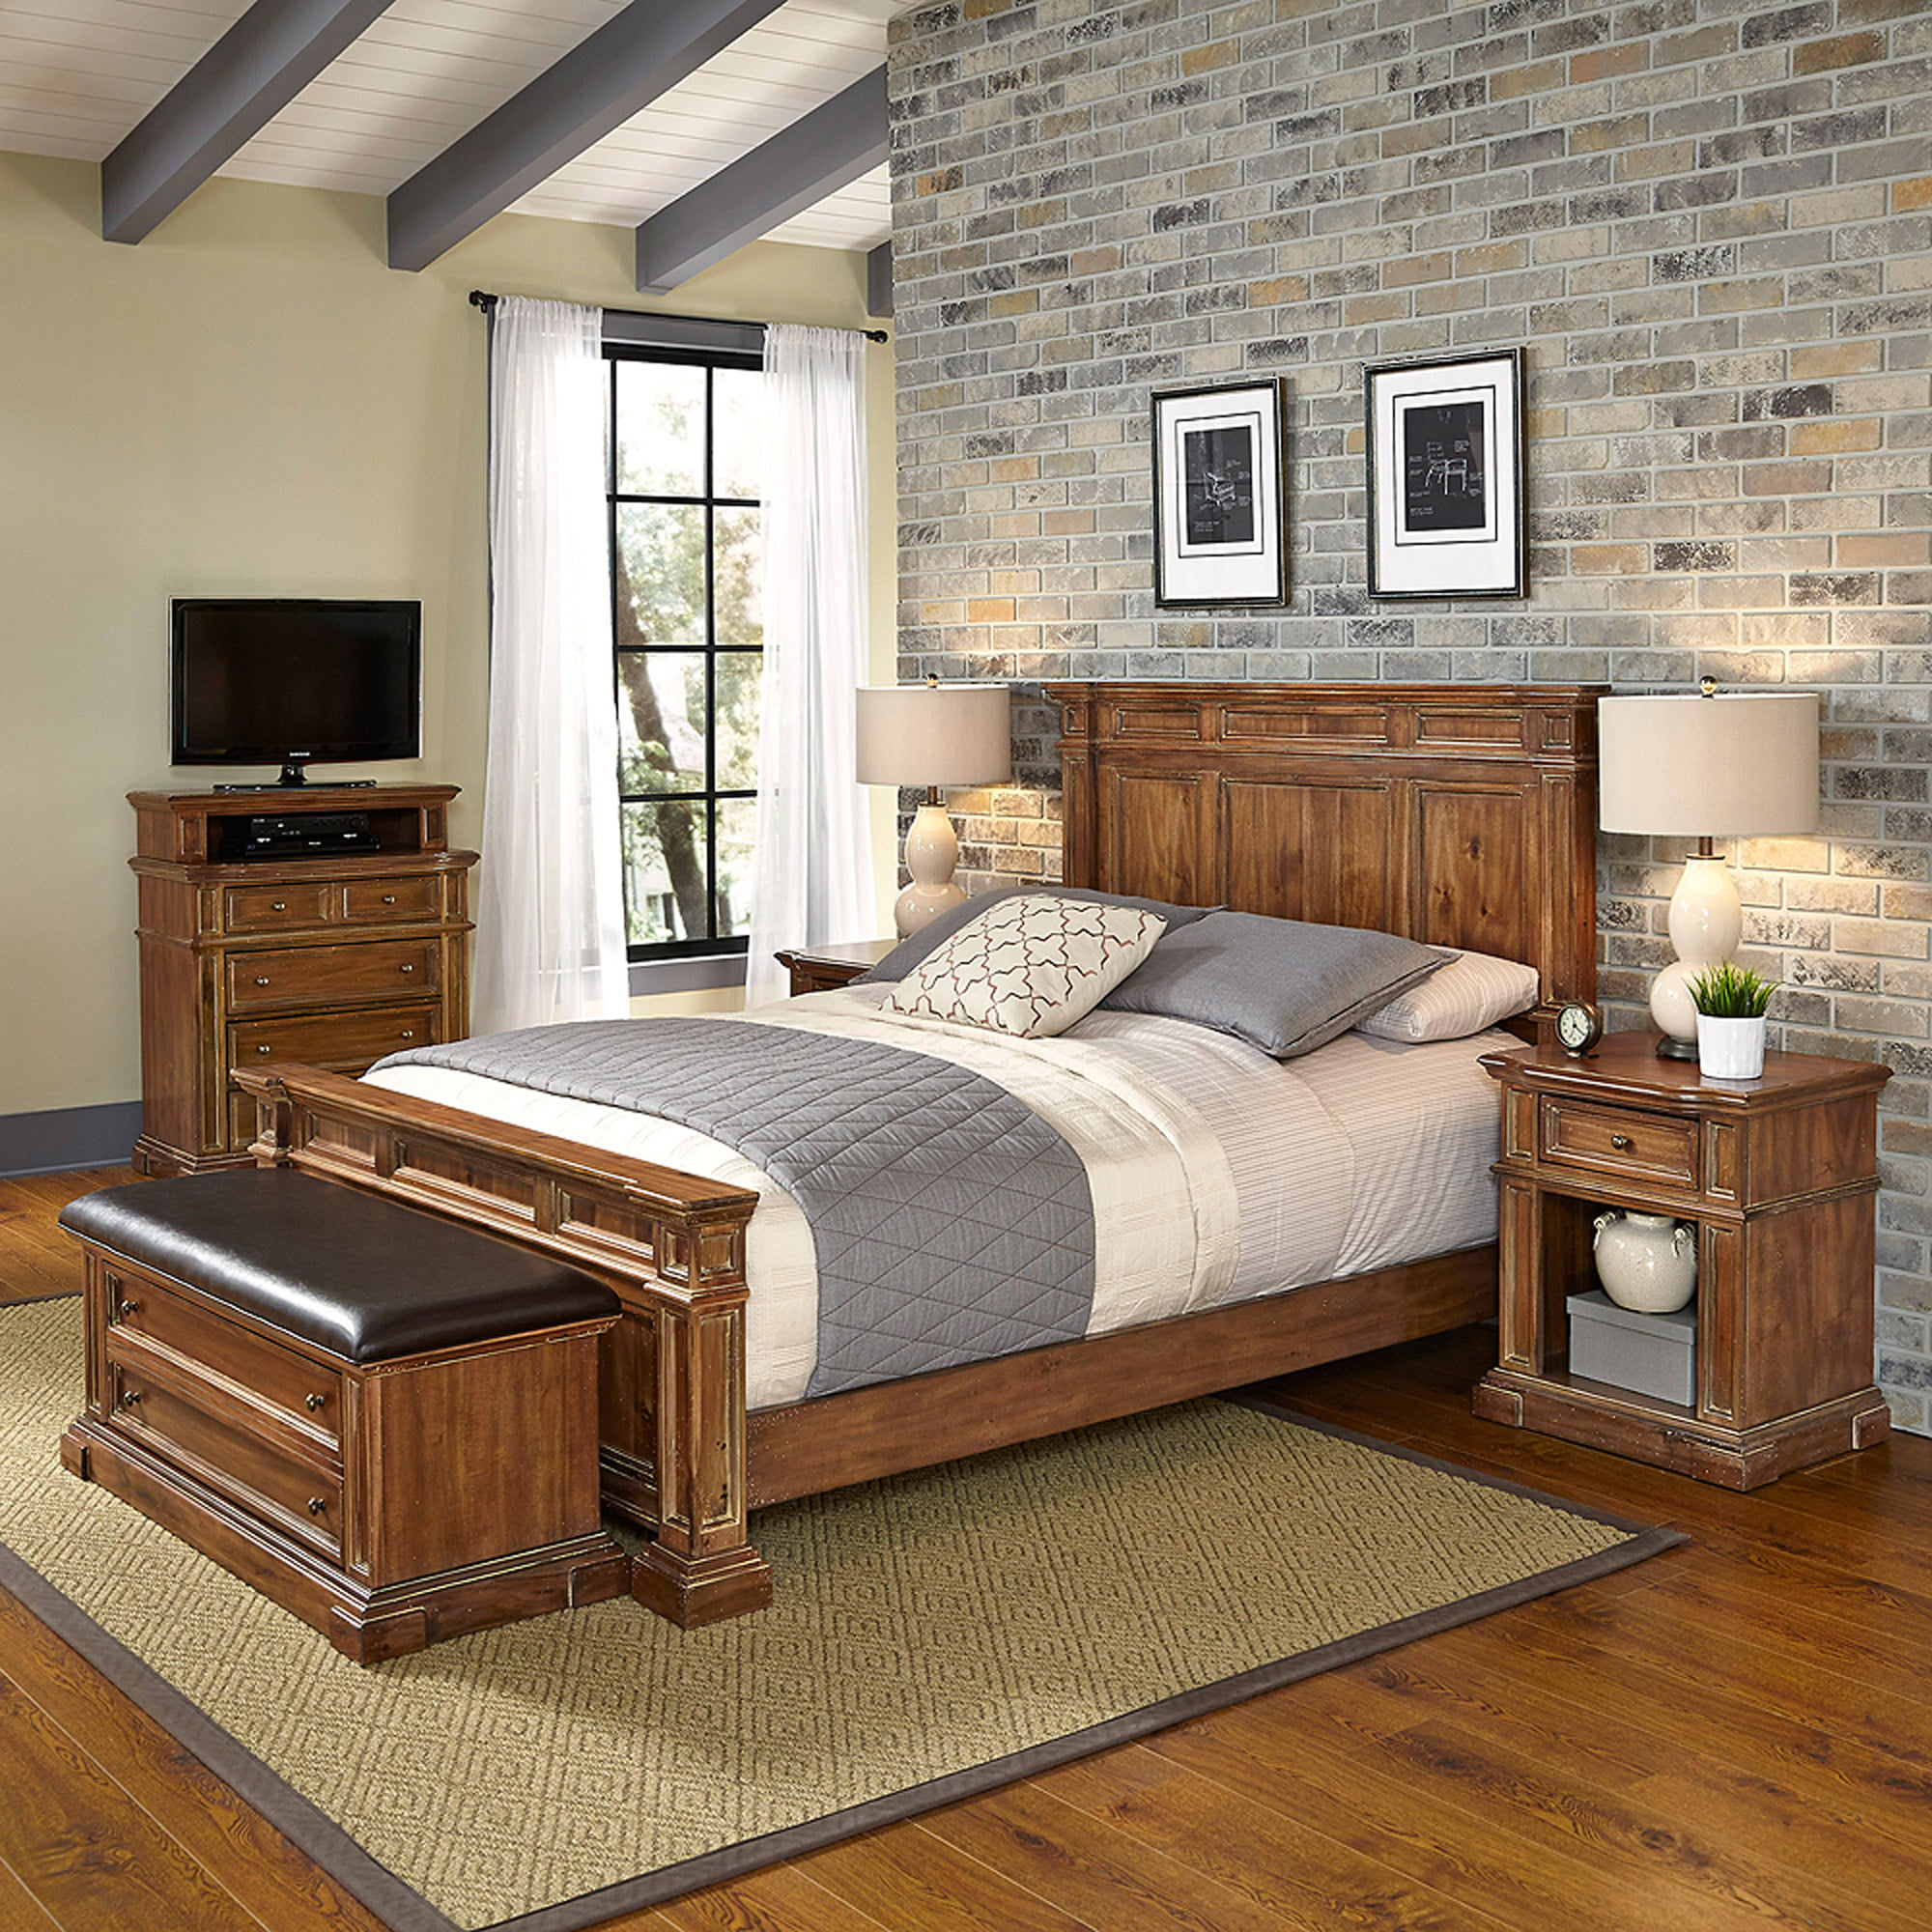 Bedroom Furniture Black. King Bedroom Furniture Black